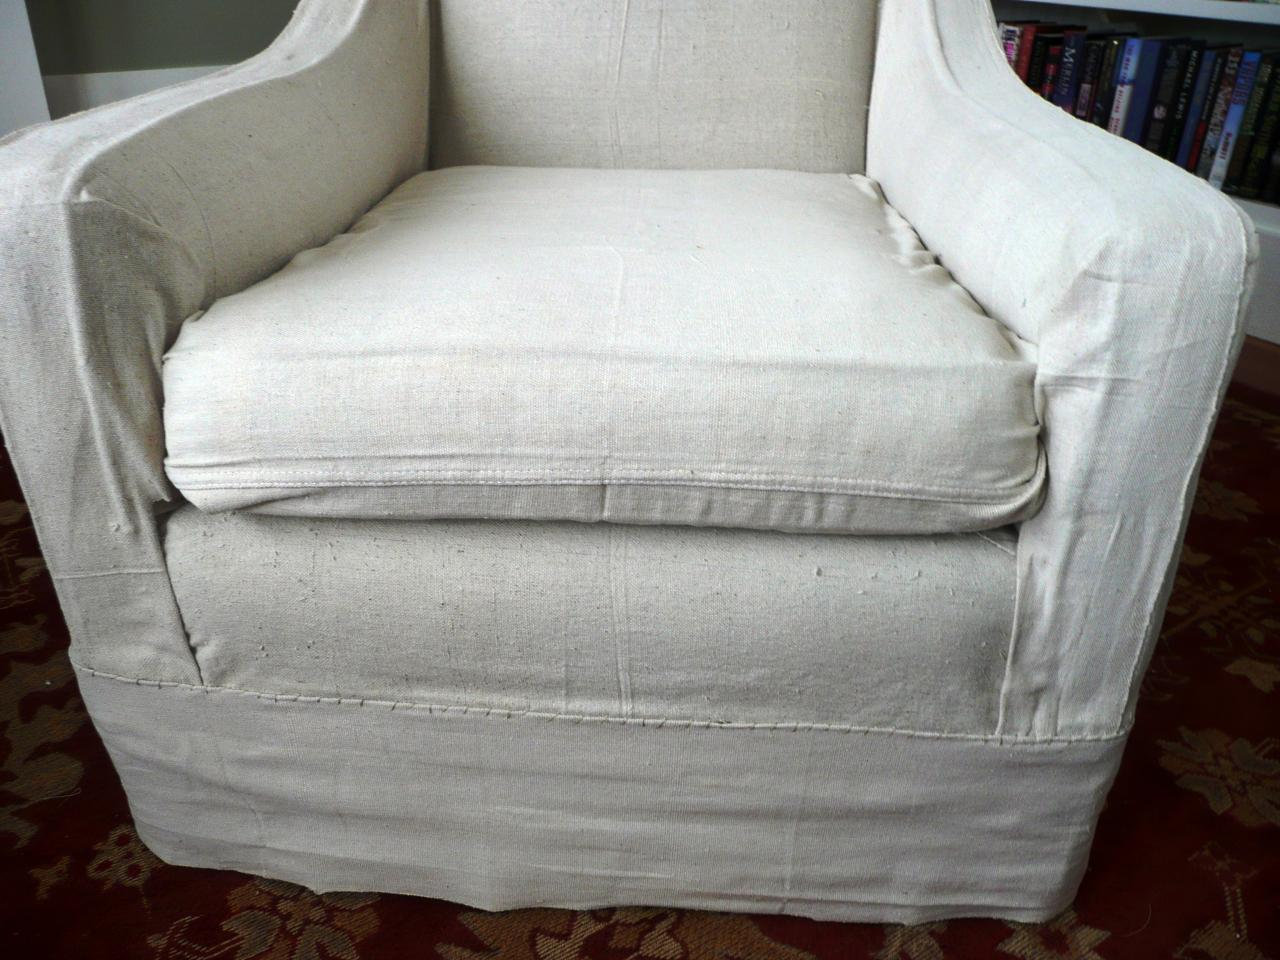 wood arm chair covers best pc gaming chairs how to make slipcovers for less than 30